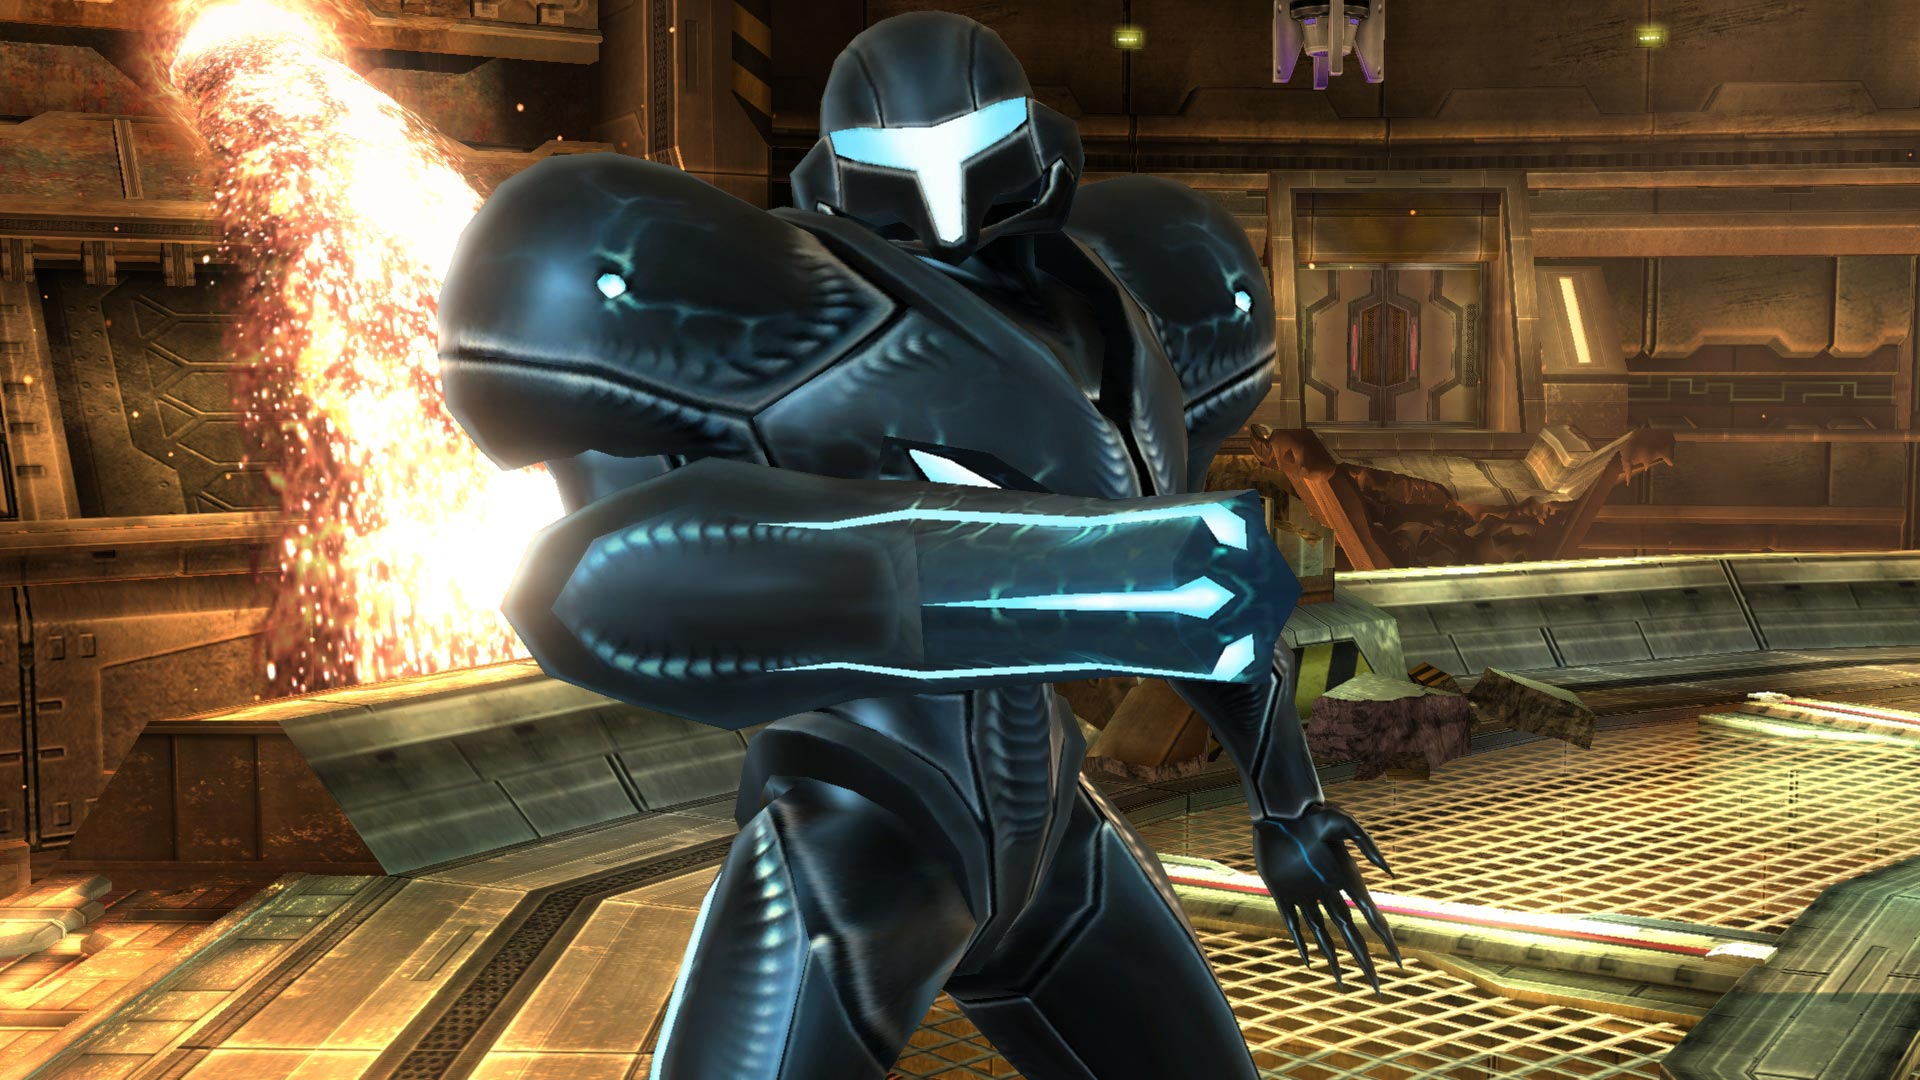 Samus Colors in Super Smash Bros. Ultimate 9 out of 9 image gallery